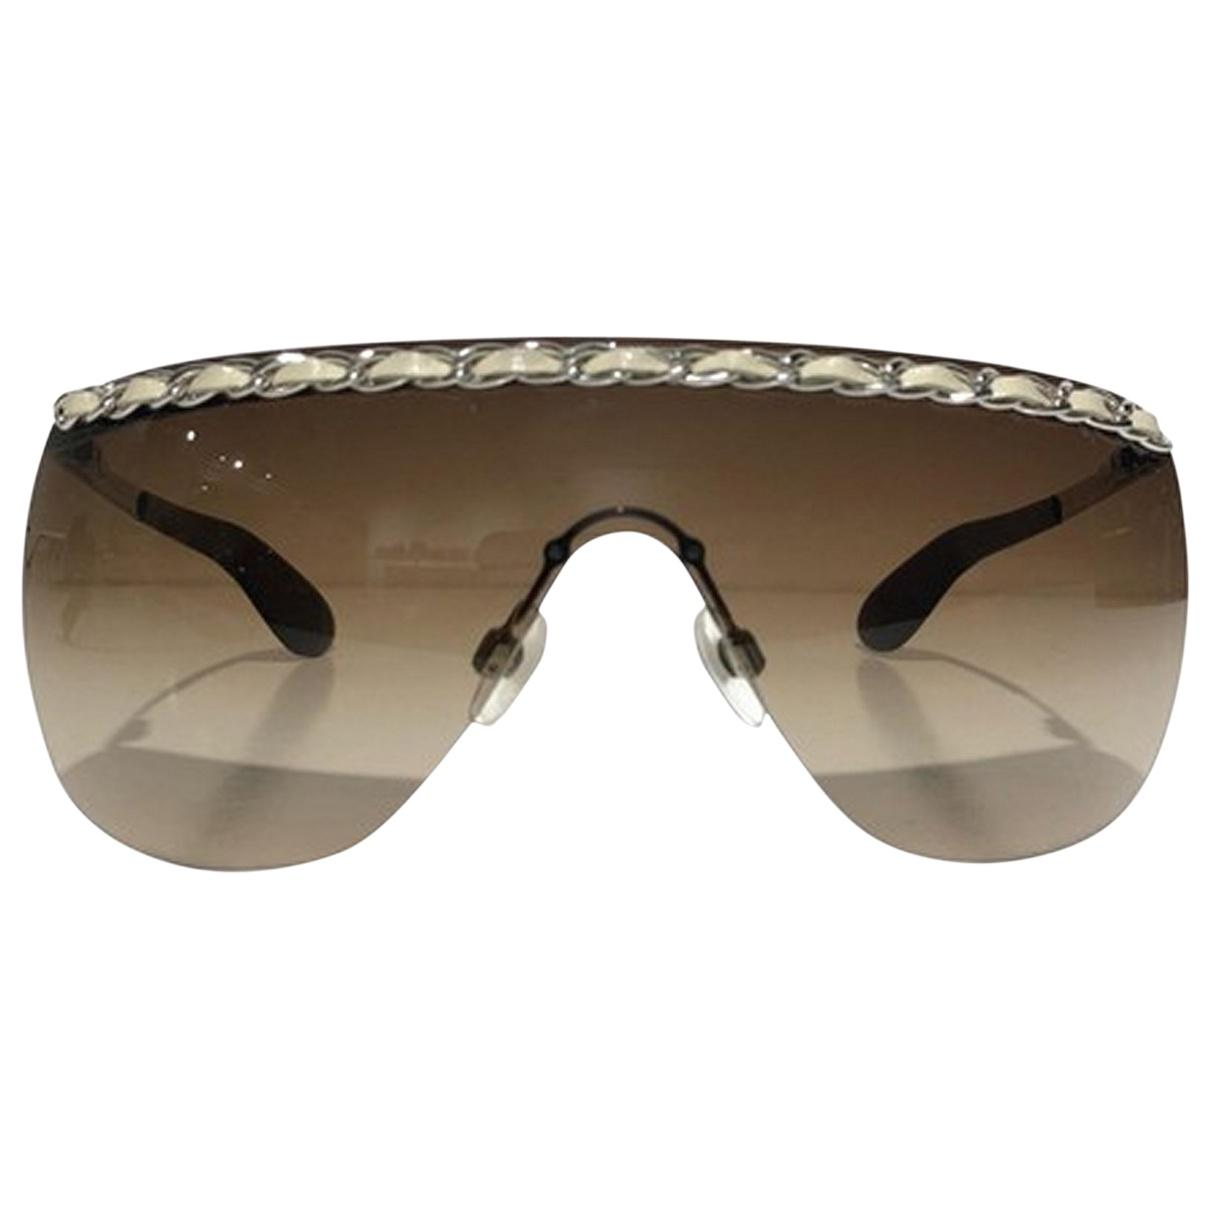 ed05b2940c Chanel Pre-owned Vintage Brown Plastic Sunglasses in Brown - Lyst